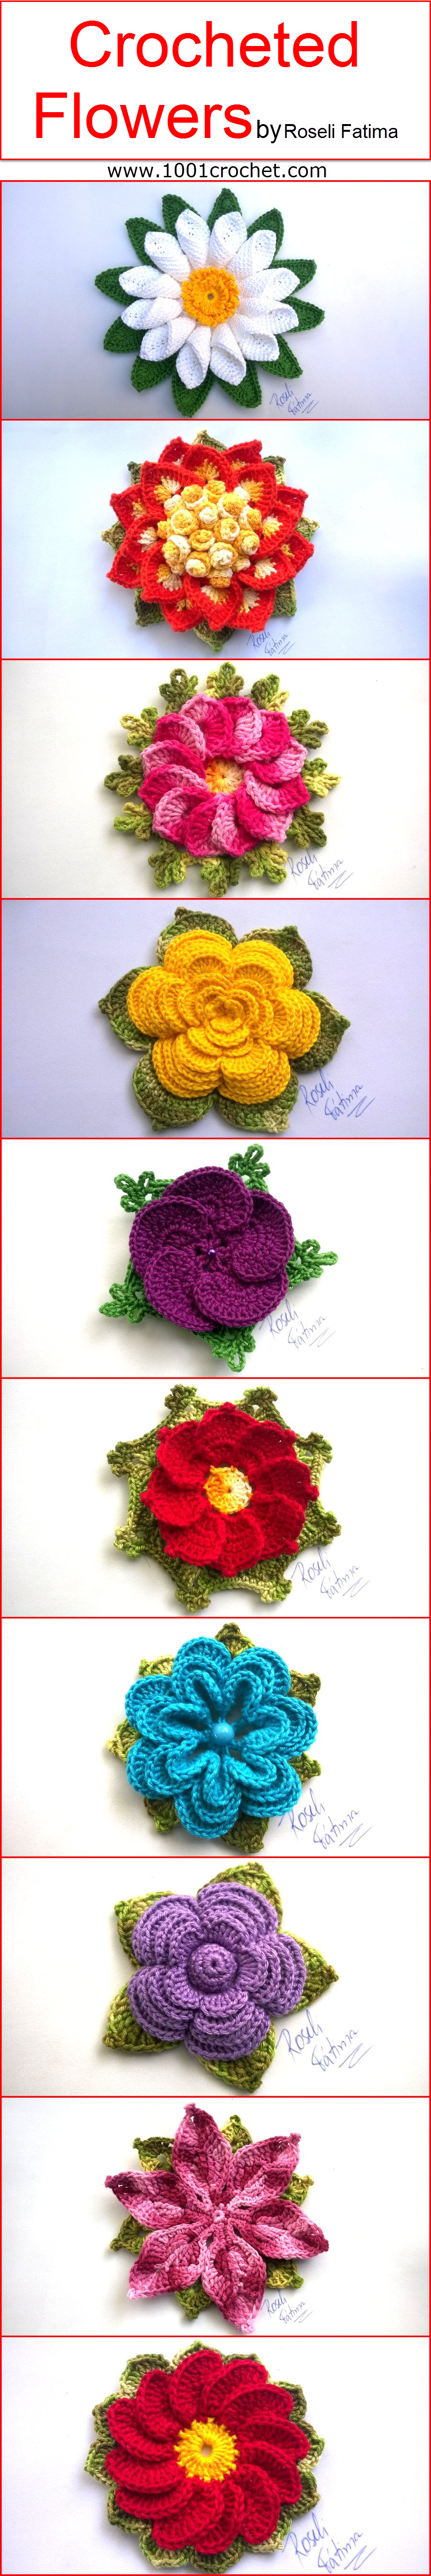 crocheted-flowers-created-by-roseli-fatima